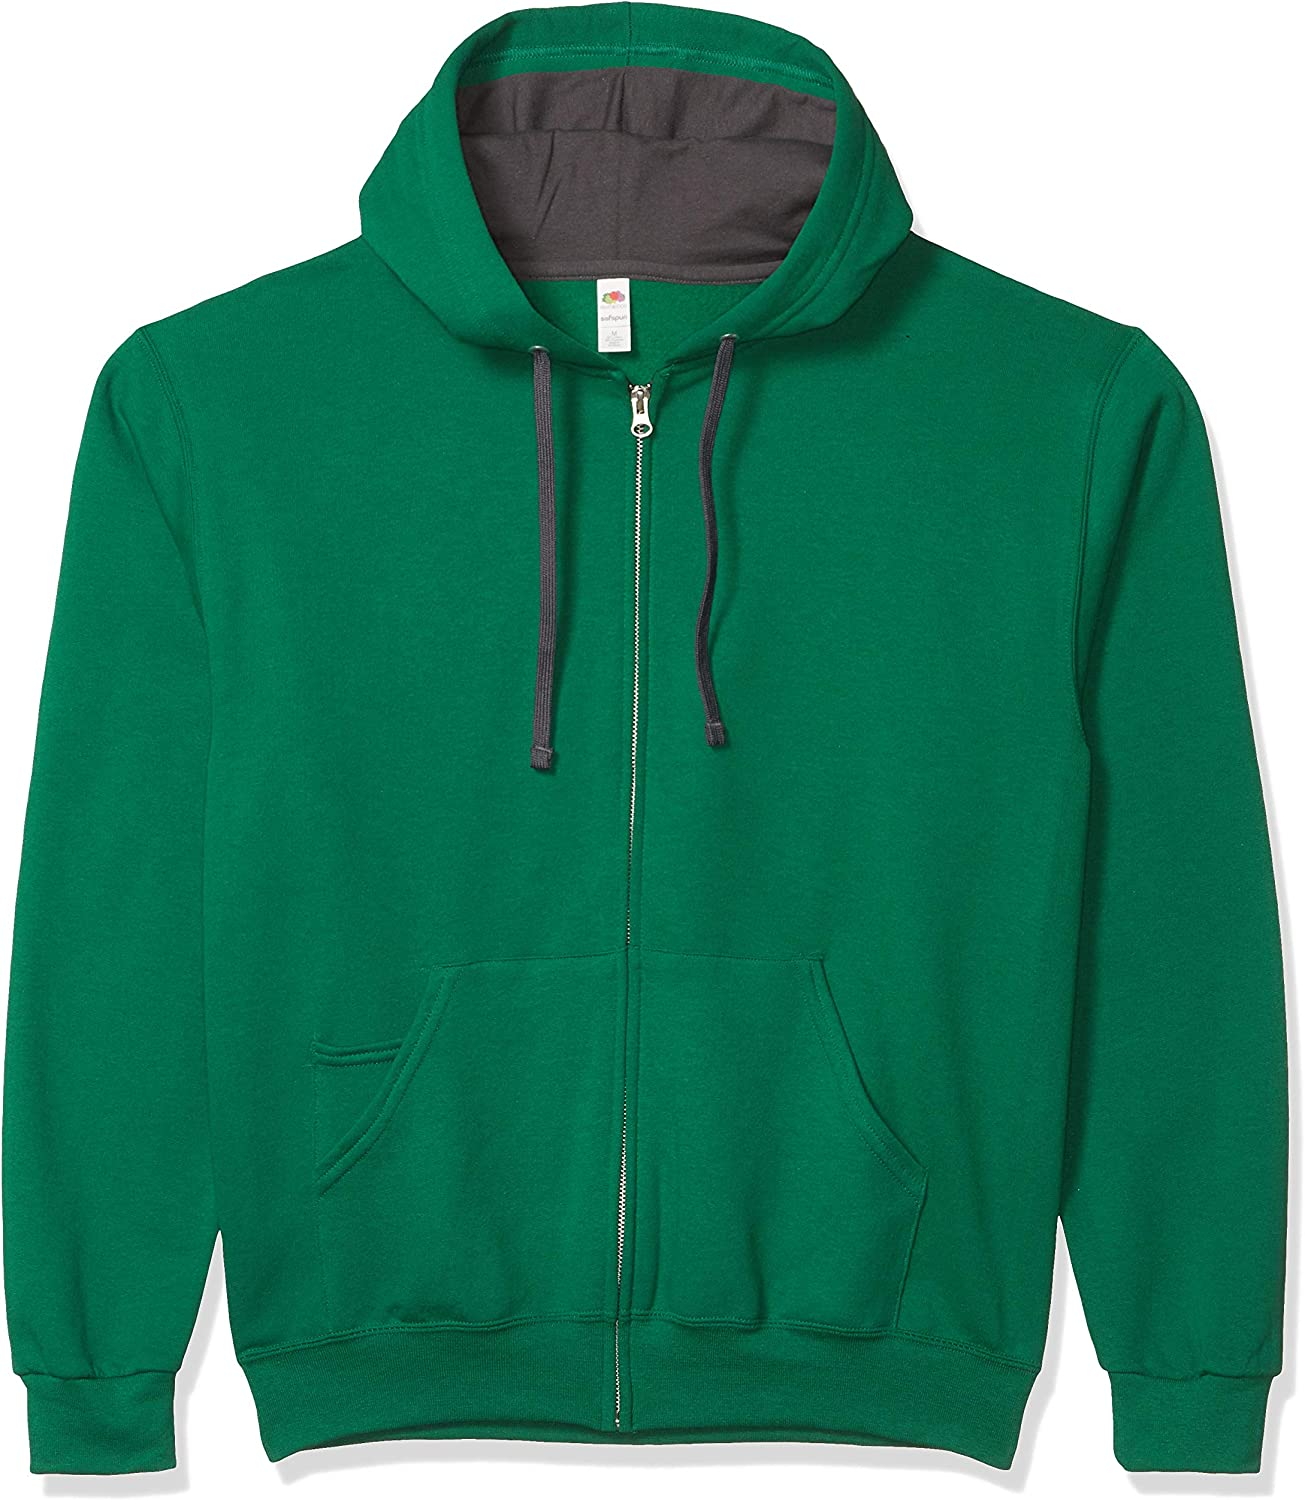 Fruit of the Loom Men's Full-Zip Hooded Sweatshirt